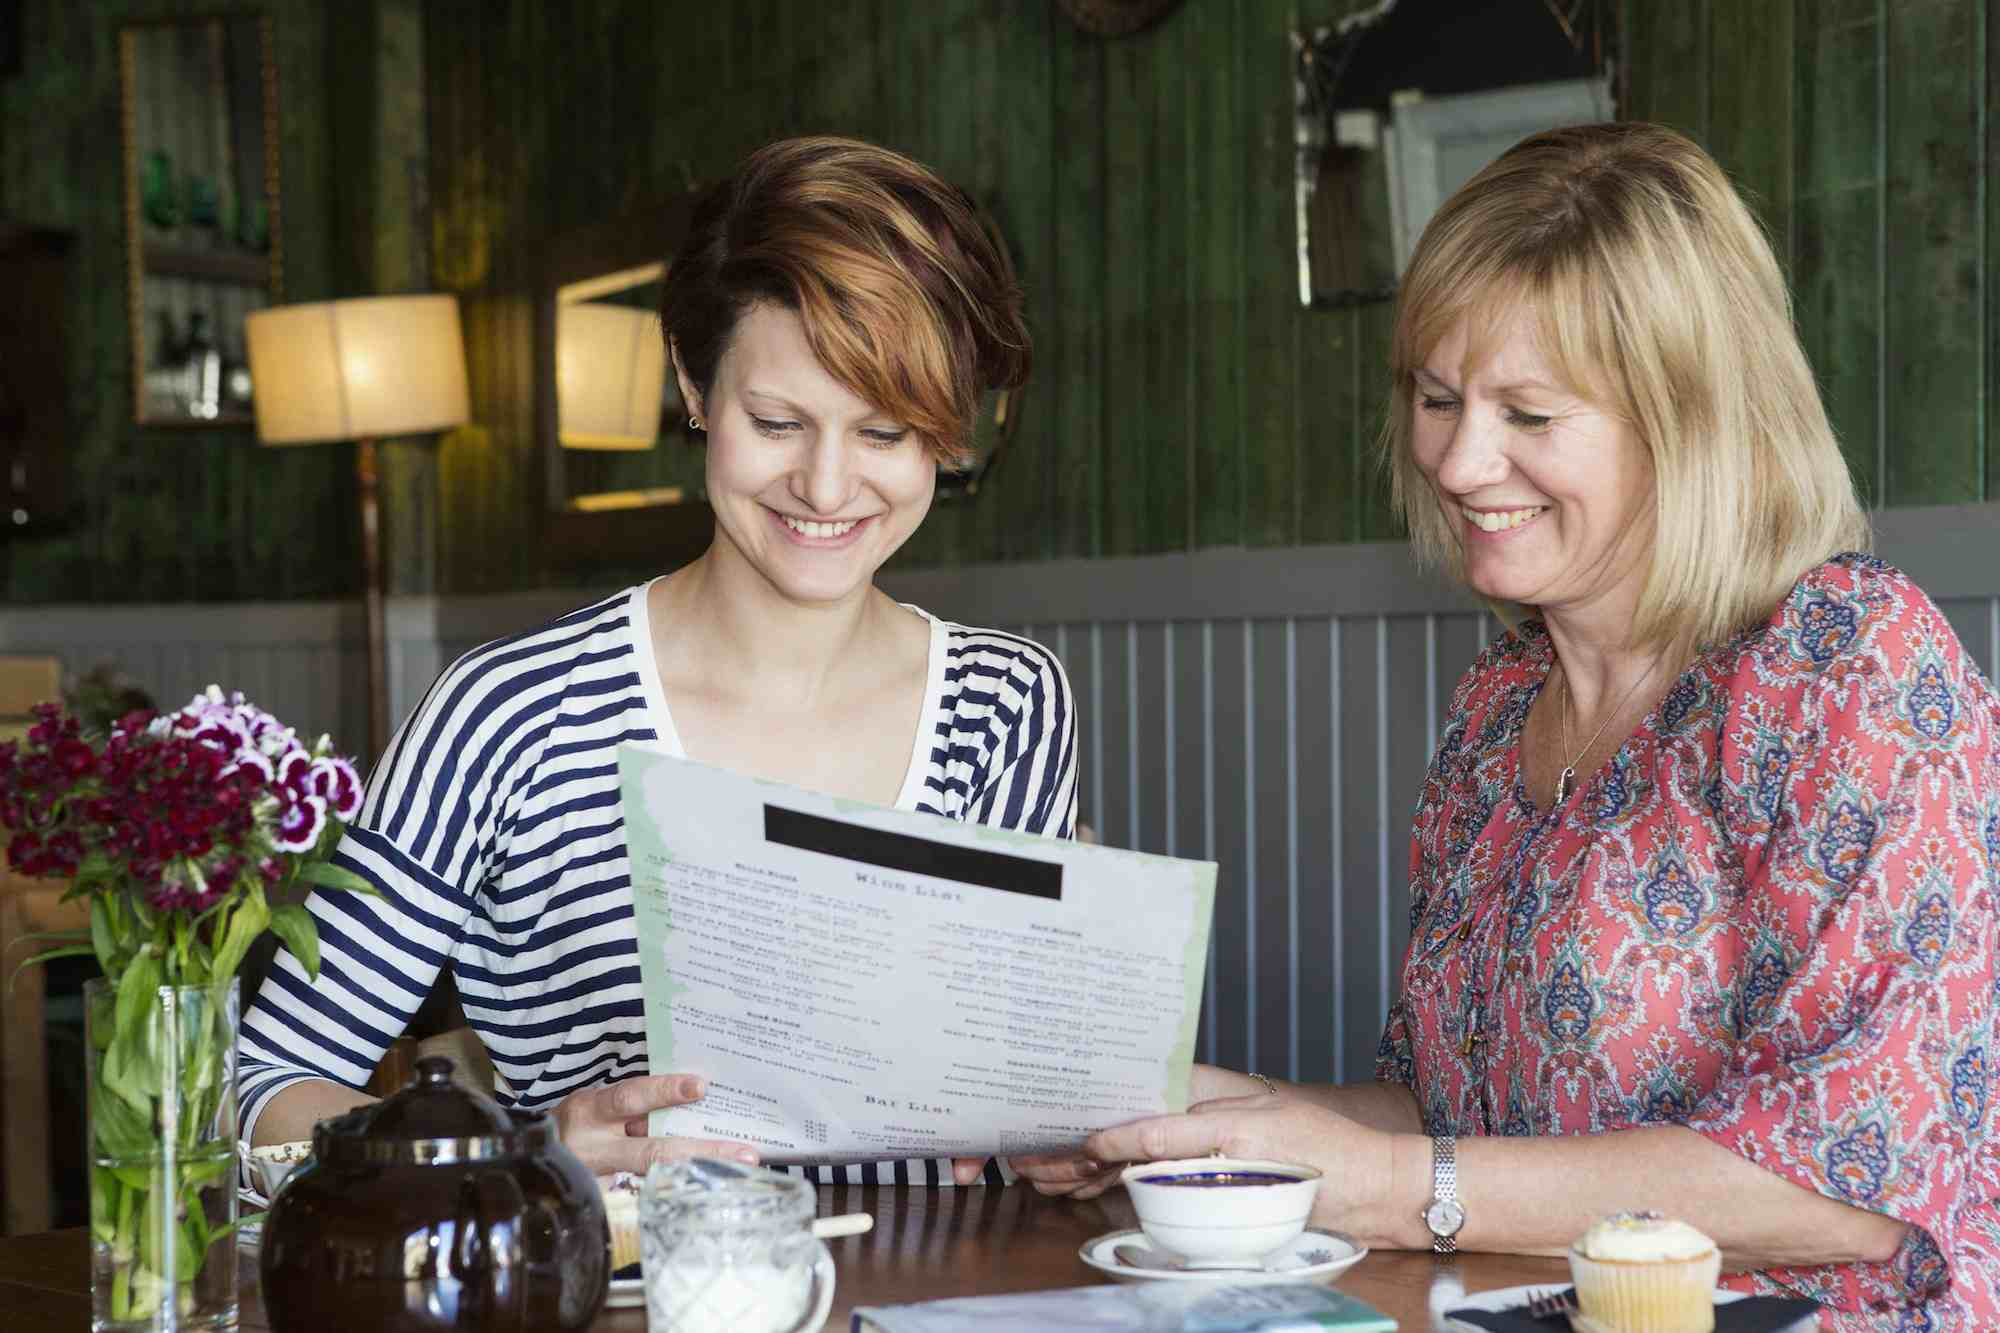 Mother and daughter choosing food in cafe